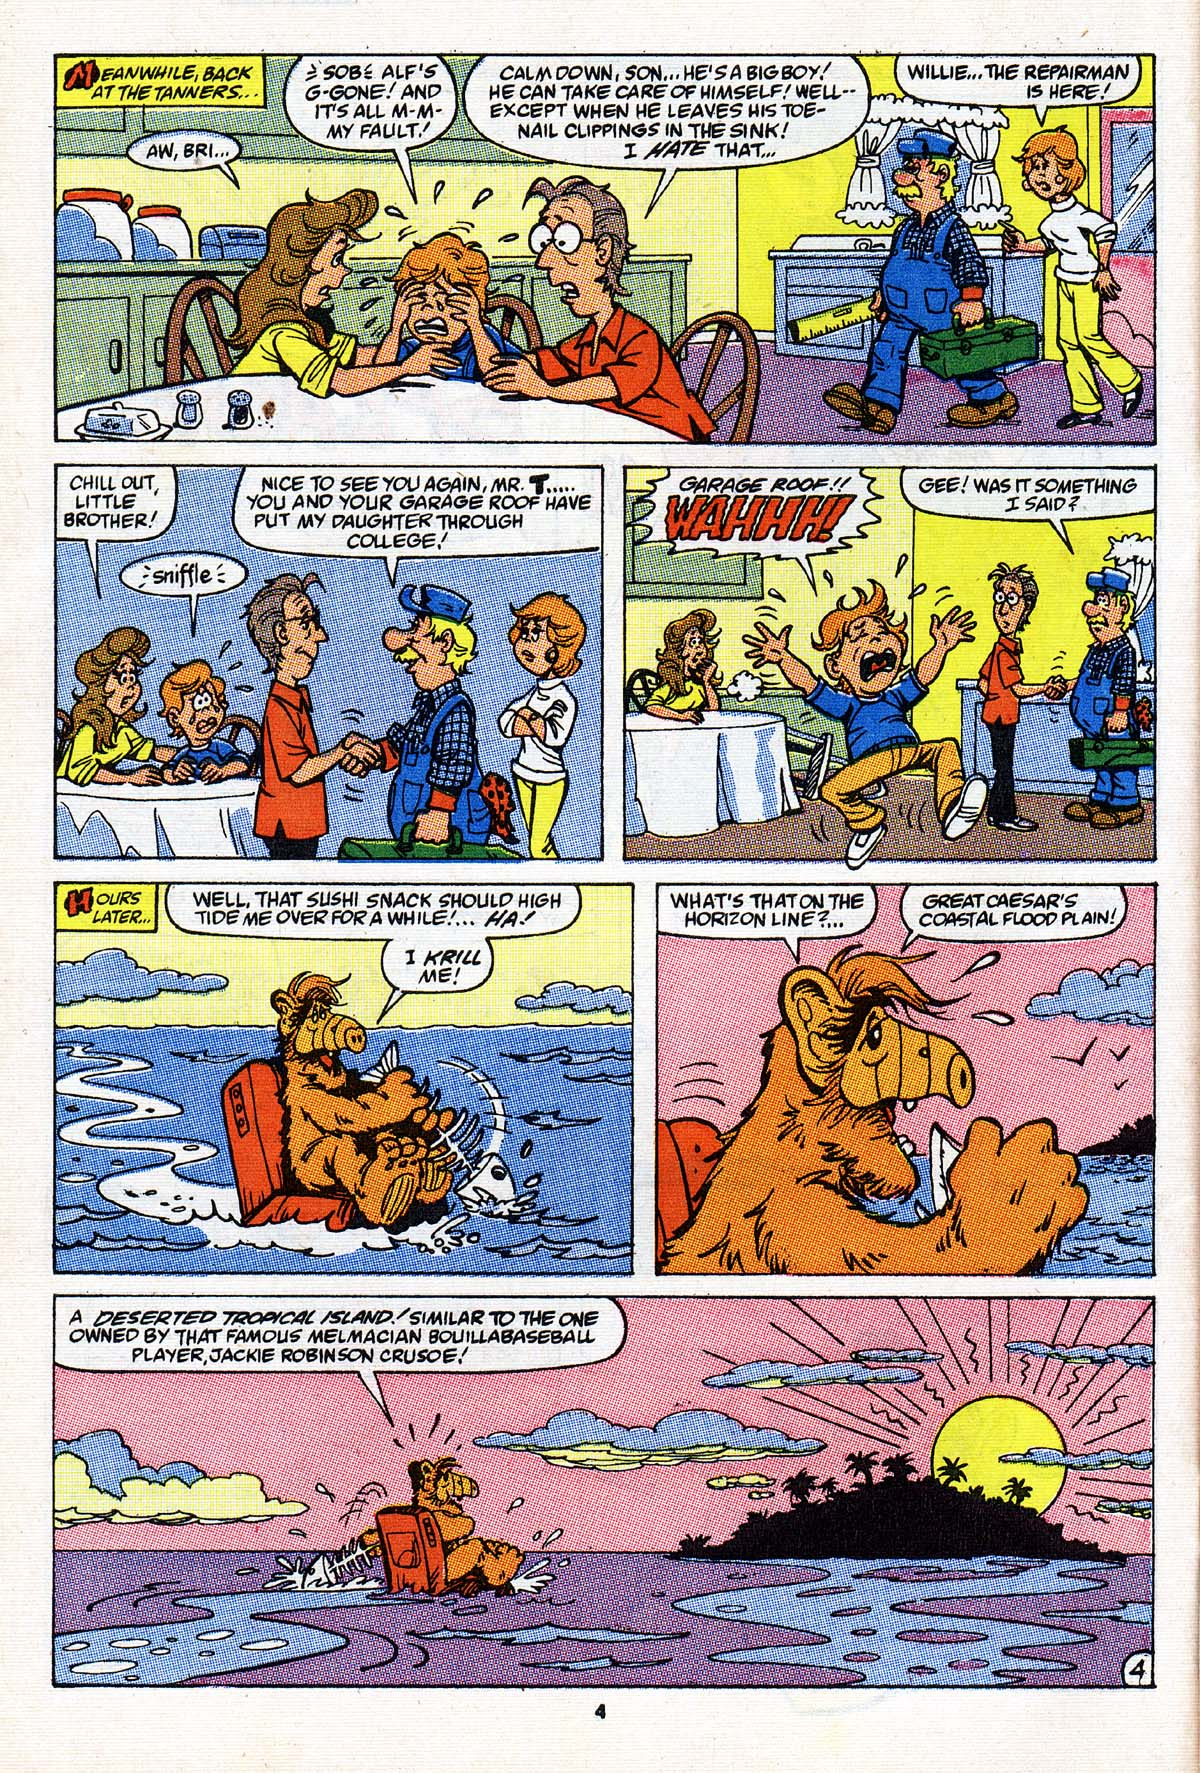 Read online ALF comic -  Issue #27 - 5